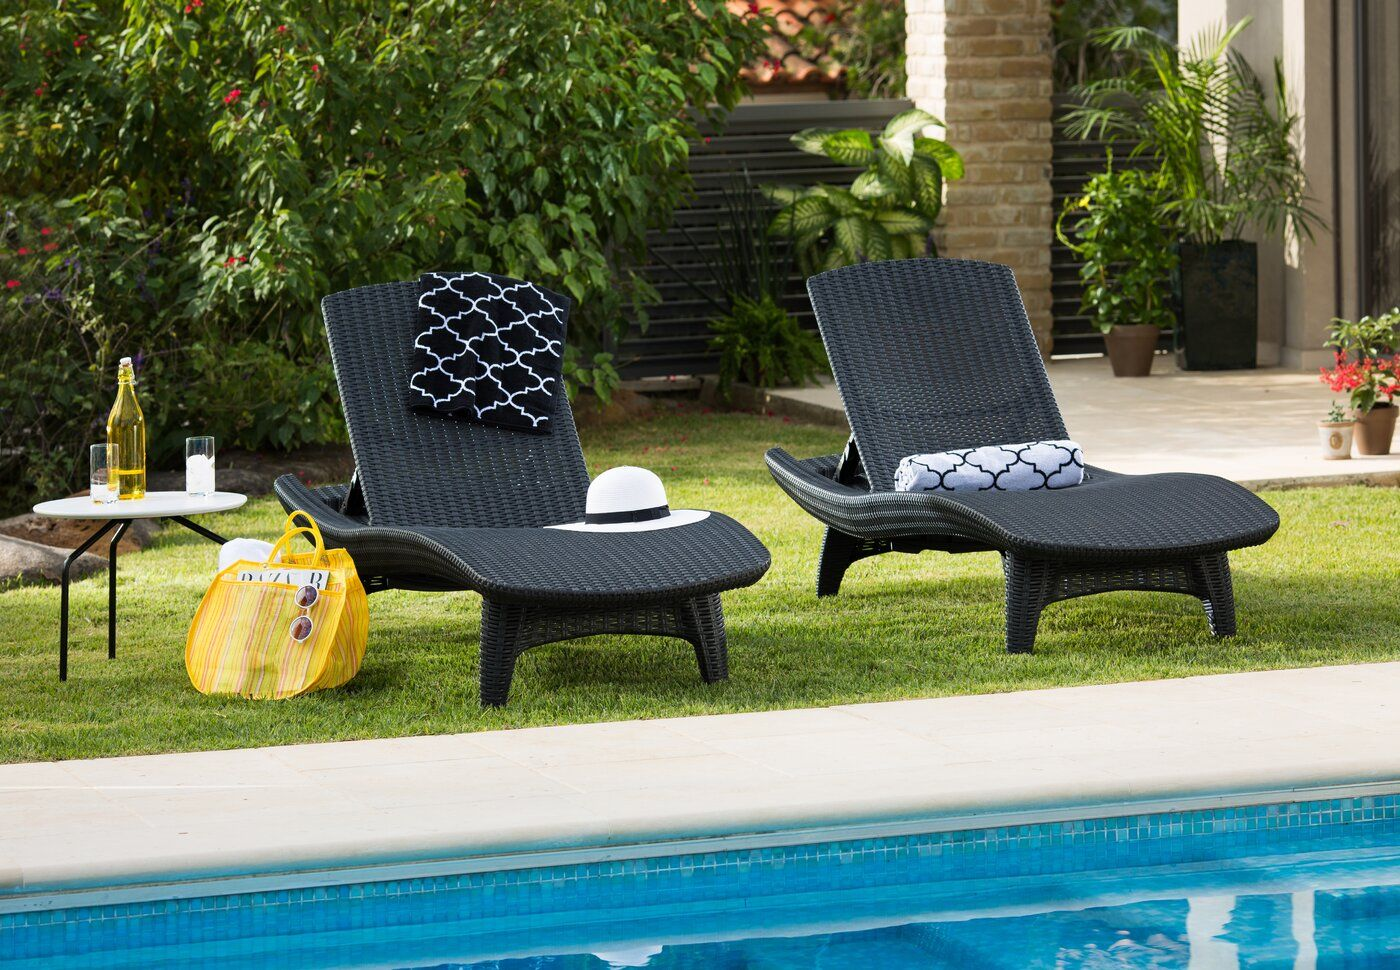 Clarita Sun Reclining Chaise Lounge  Outdoor patio chaise lounge